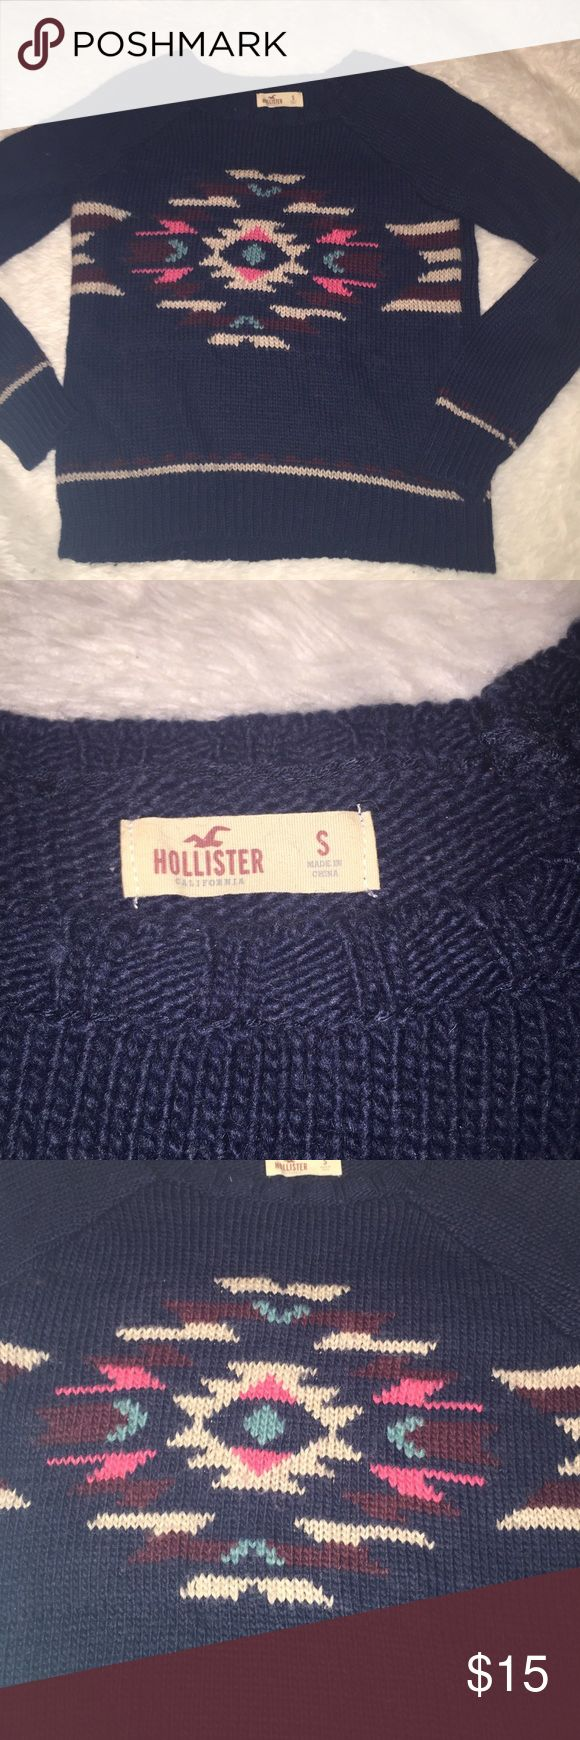 Hollister tribal print sweater Dark gray wearer with colorful tribal print design. Simple and chic terrific to wear in the fall and winter size S like new Hollister Sweaters Crew & Scoop Necks